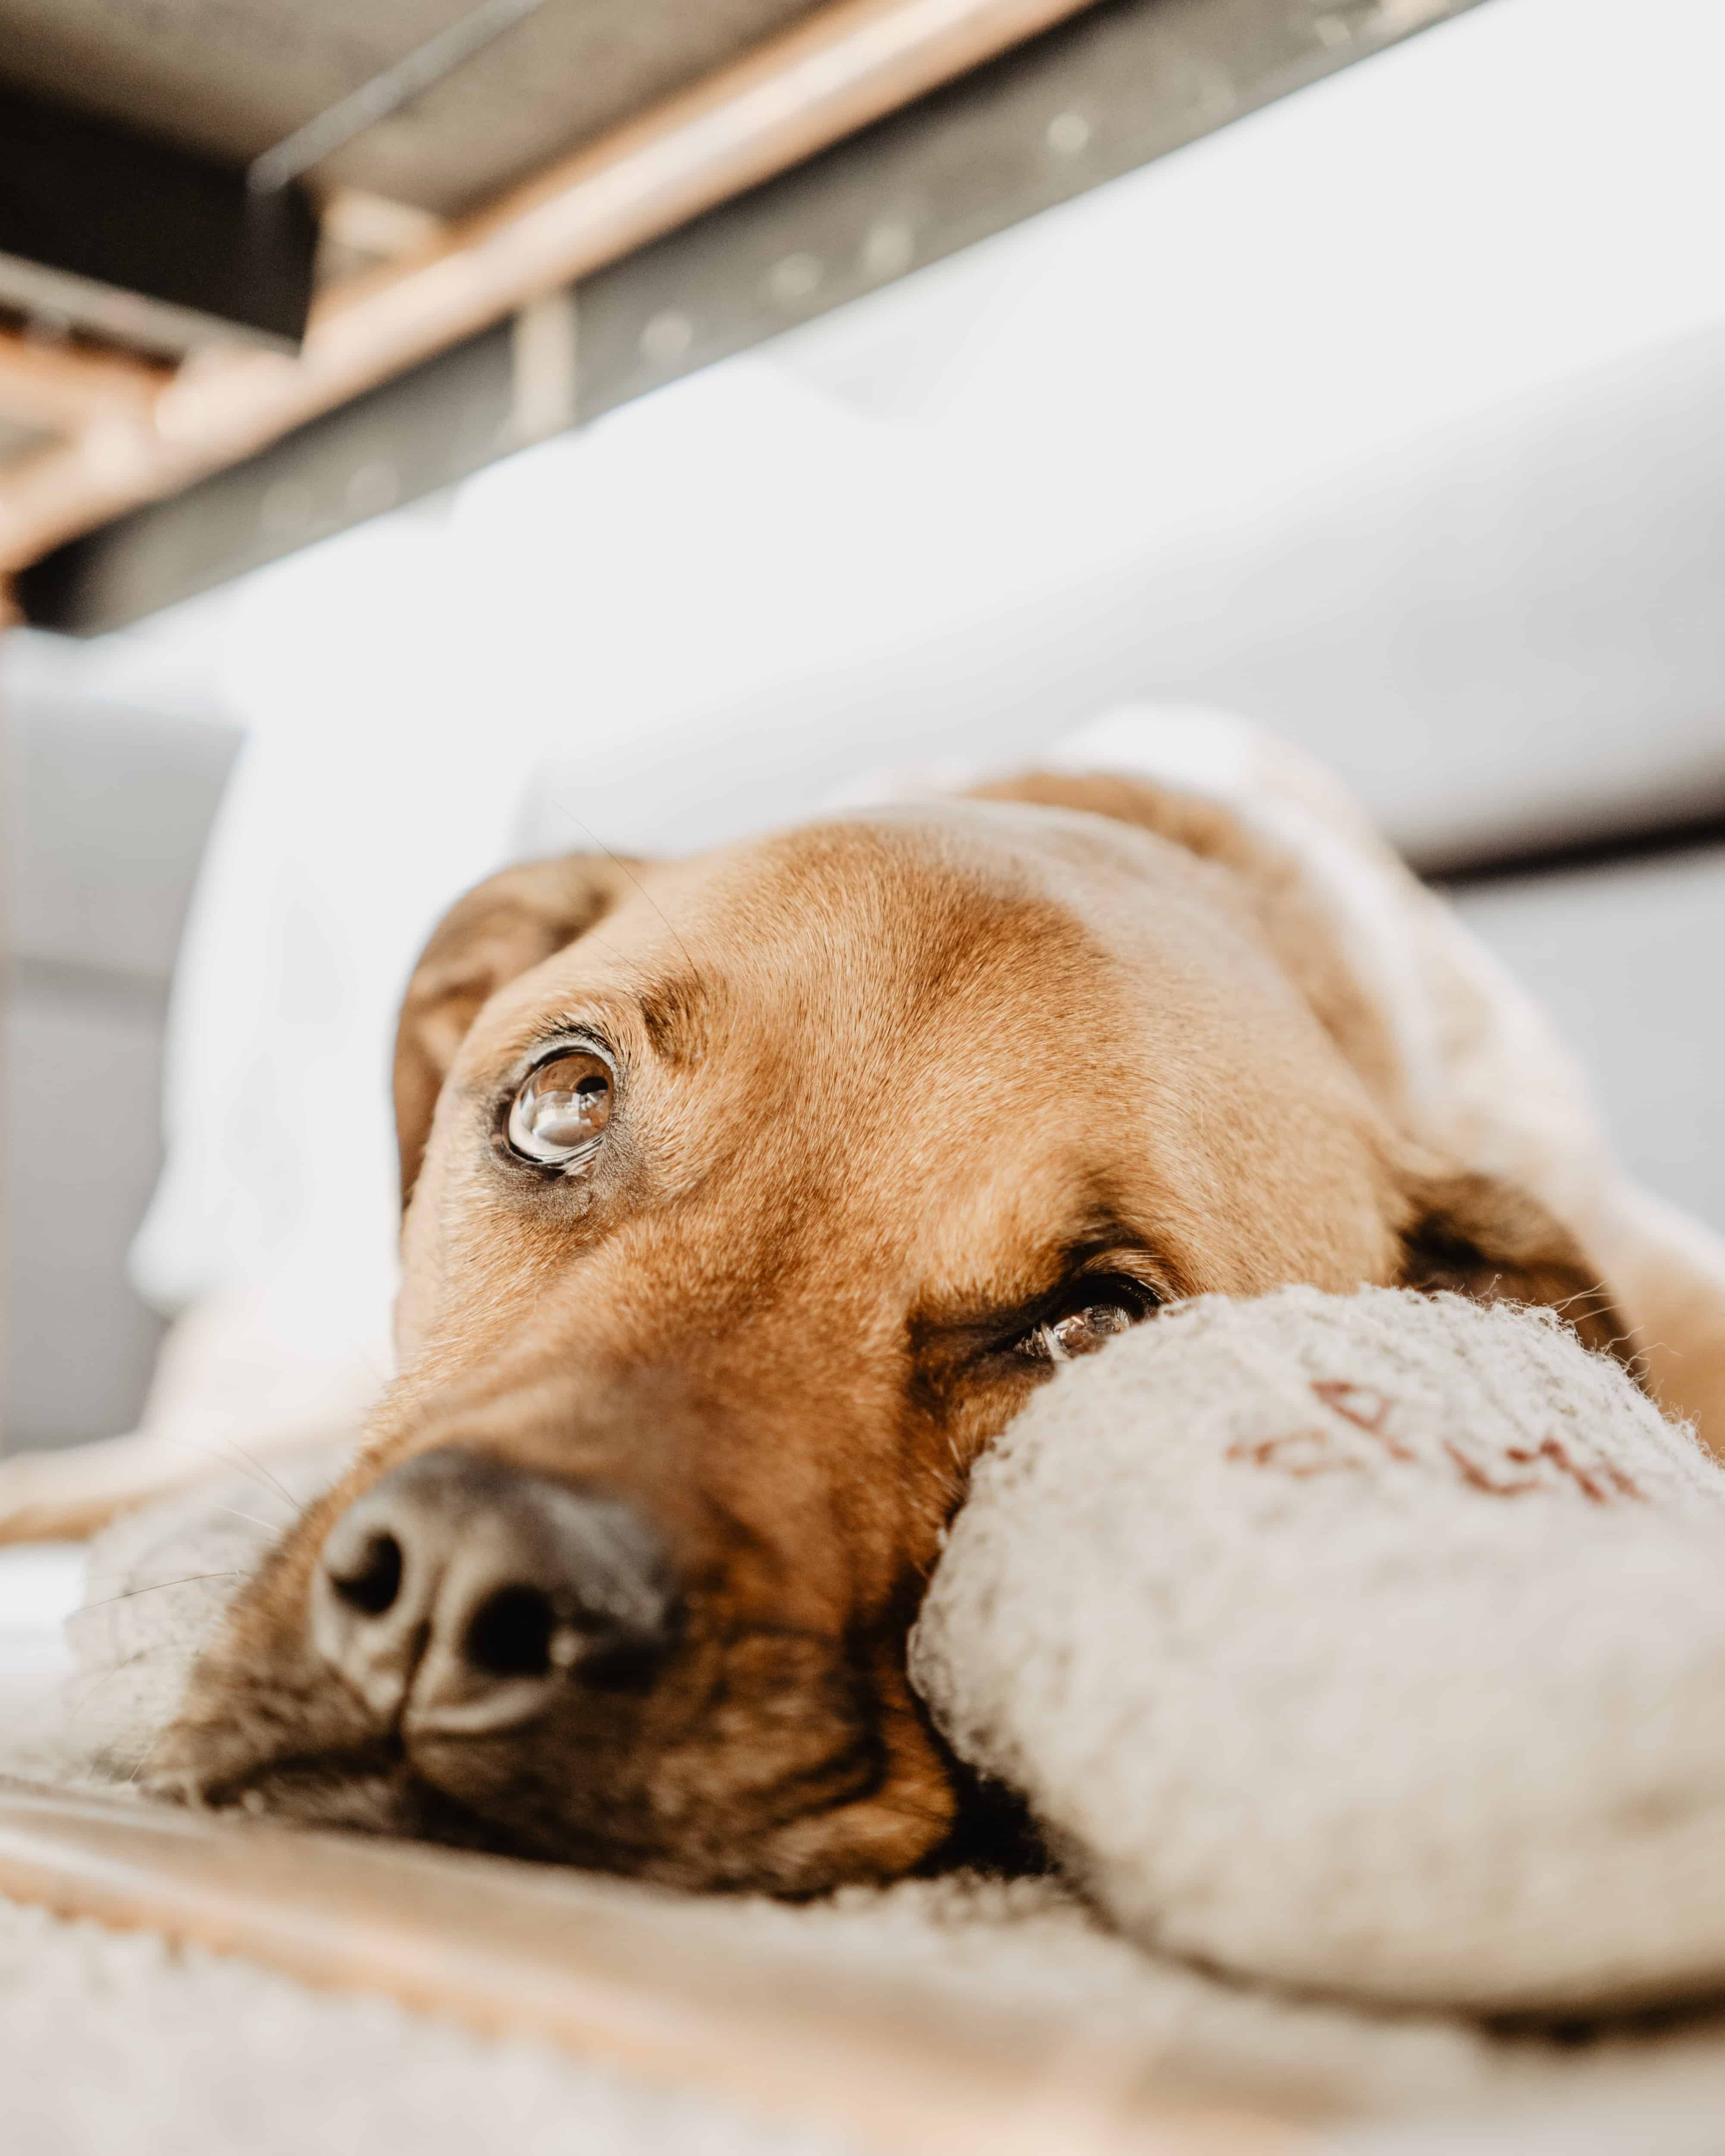 How To Clean Dog Vomit From Carpet The Unbeatable Diy